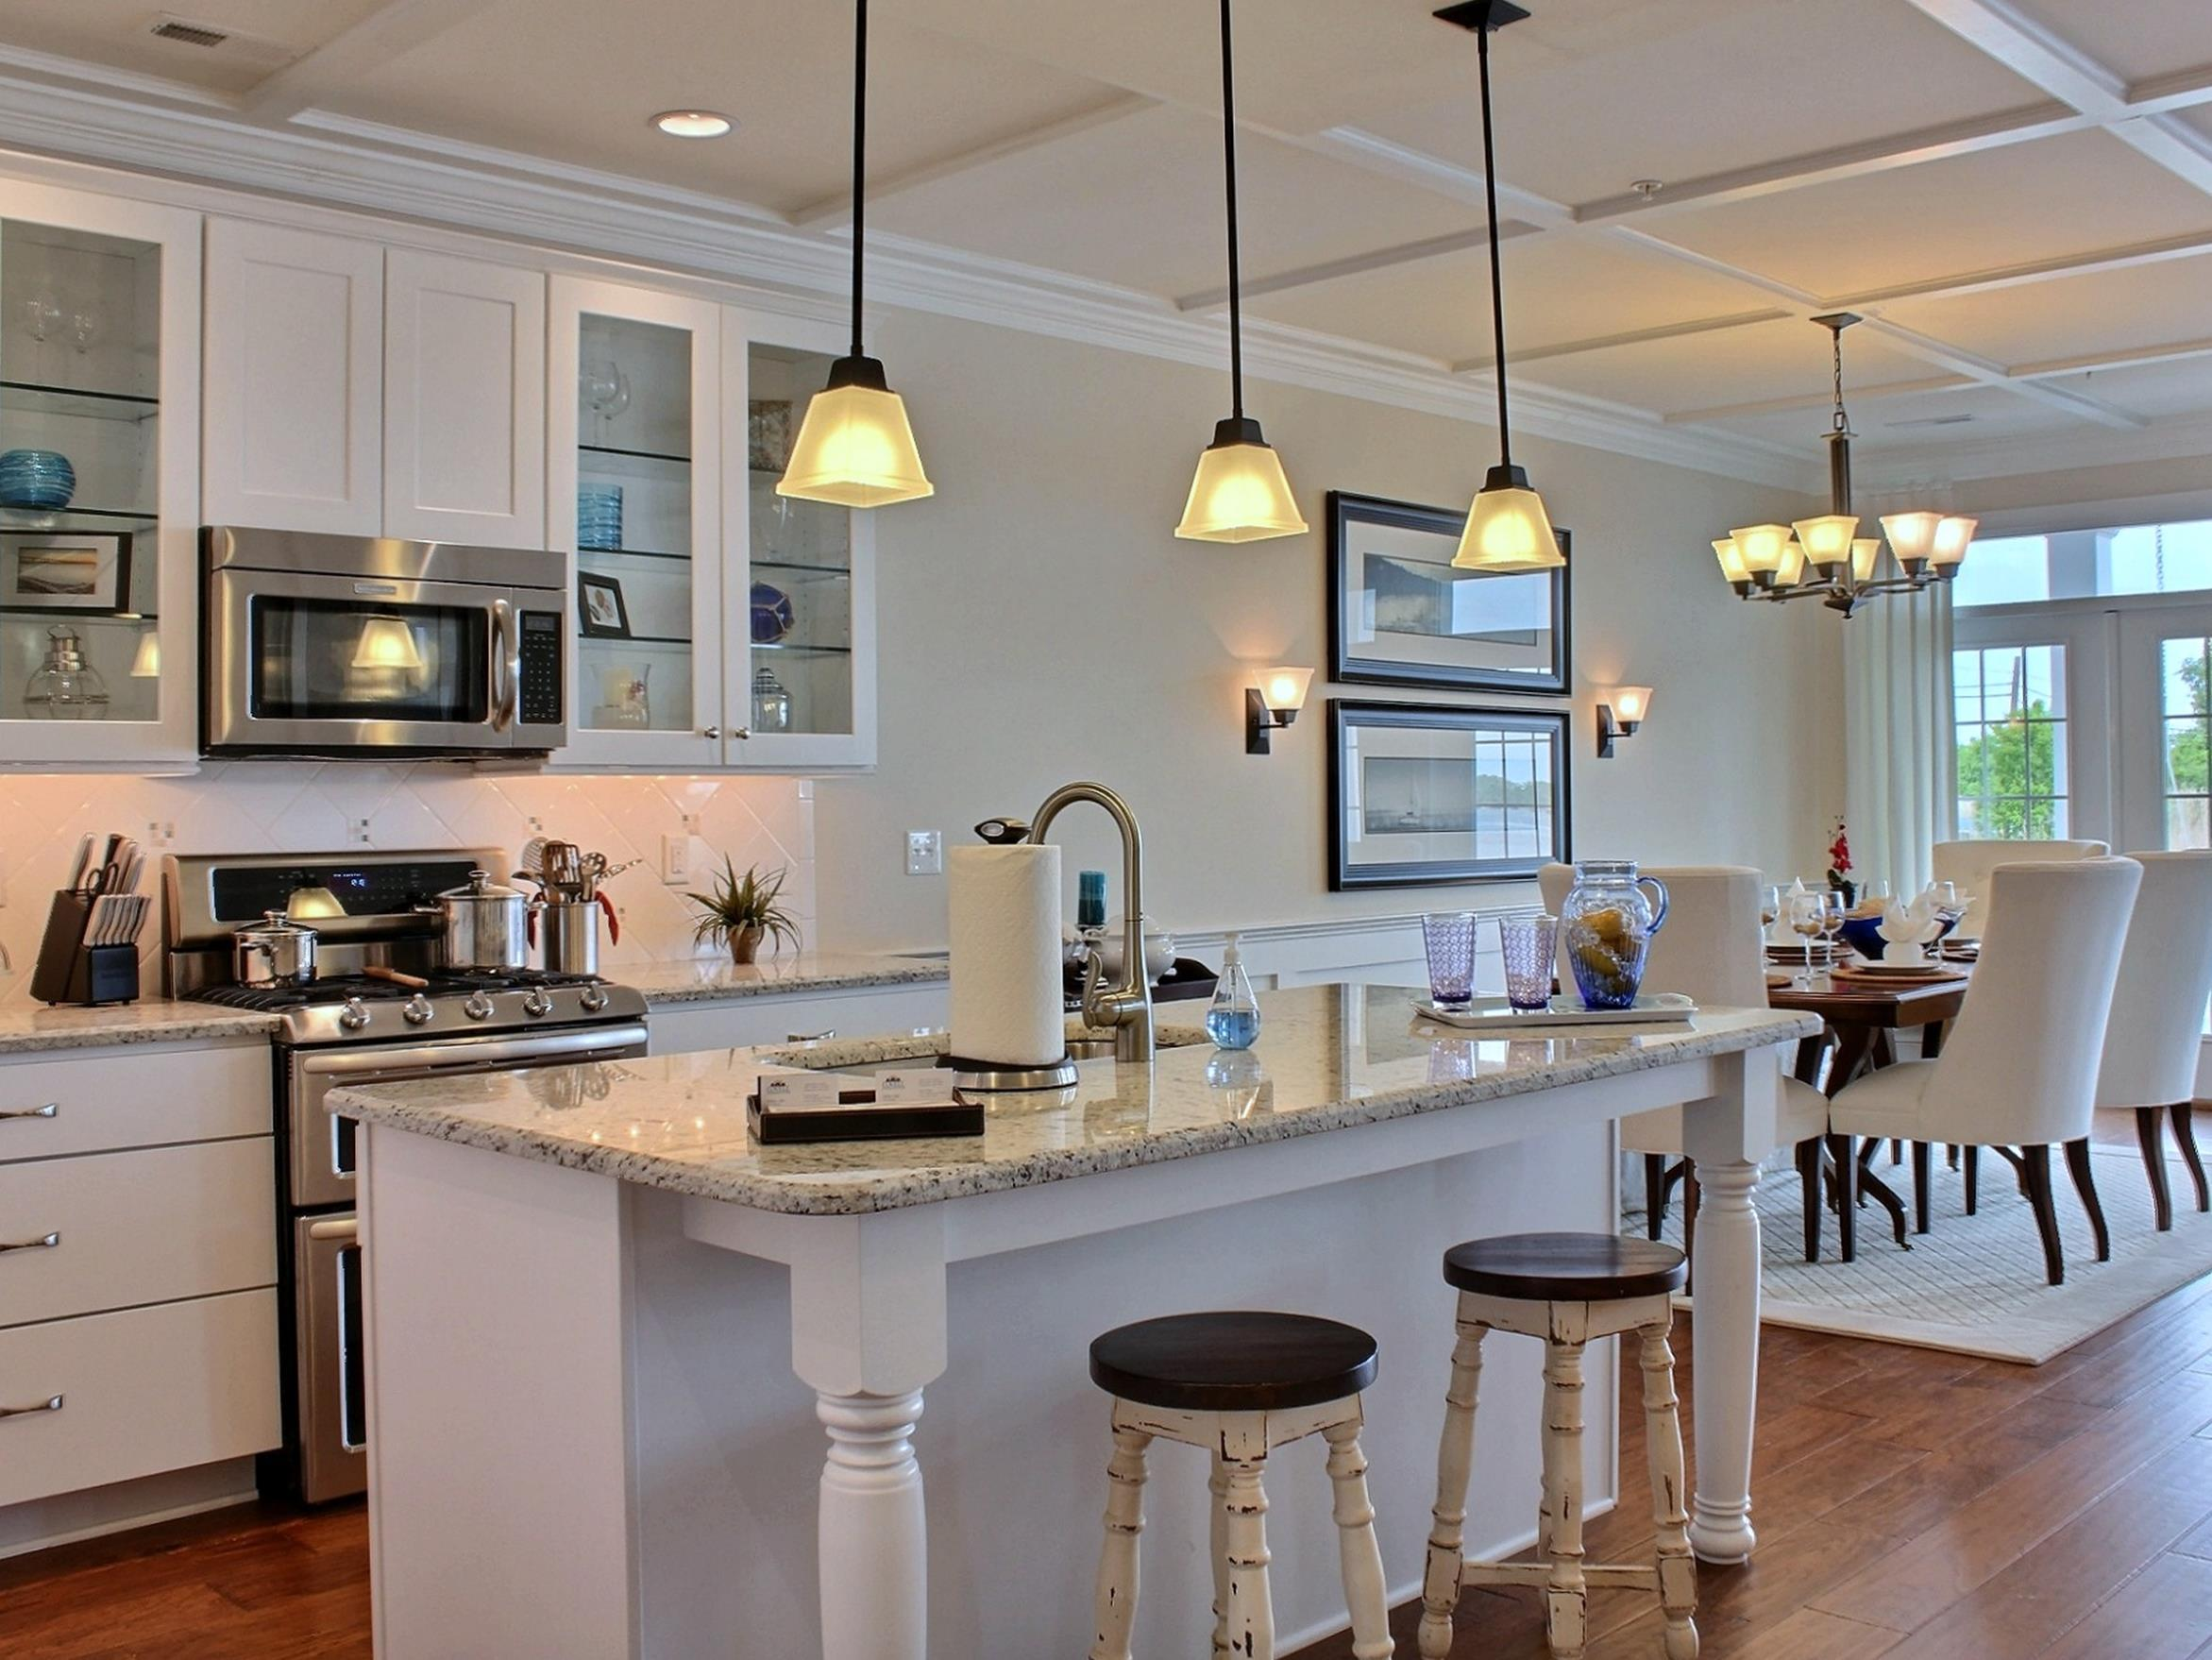 Kitchen featured in the Beacon Hill Classic By Covell Communities in Eastern Shore, MD